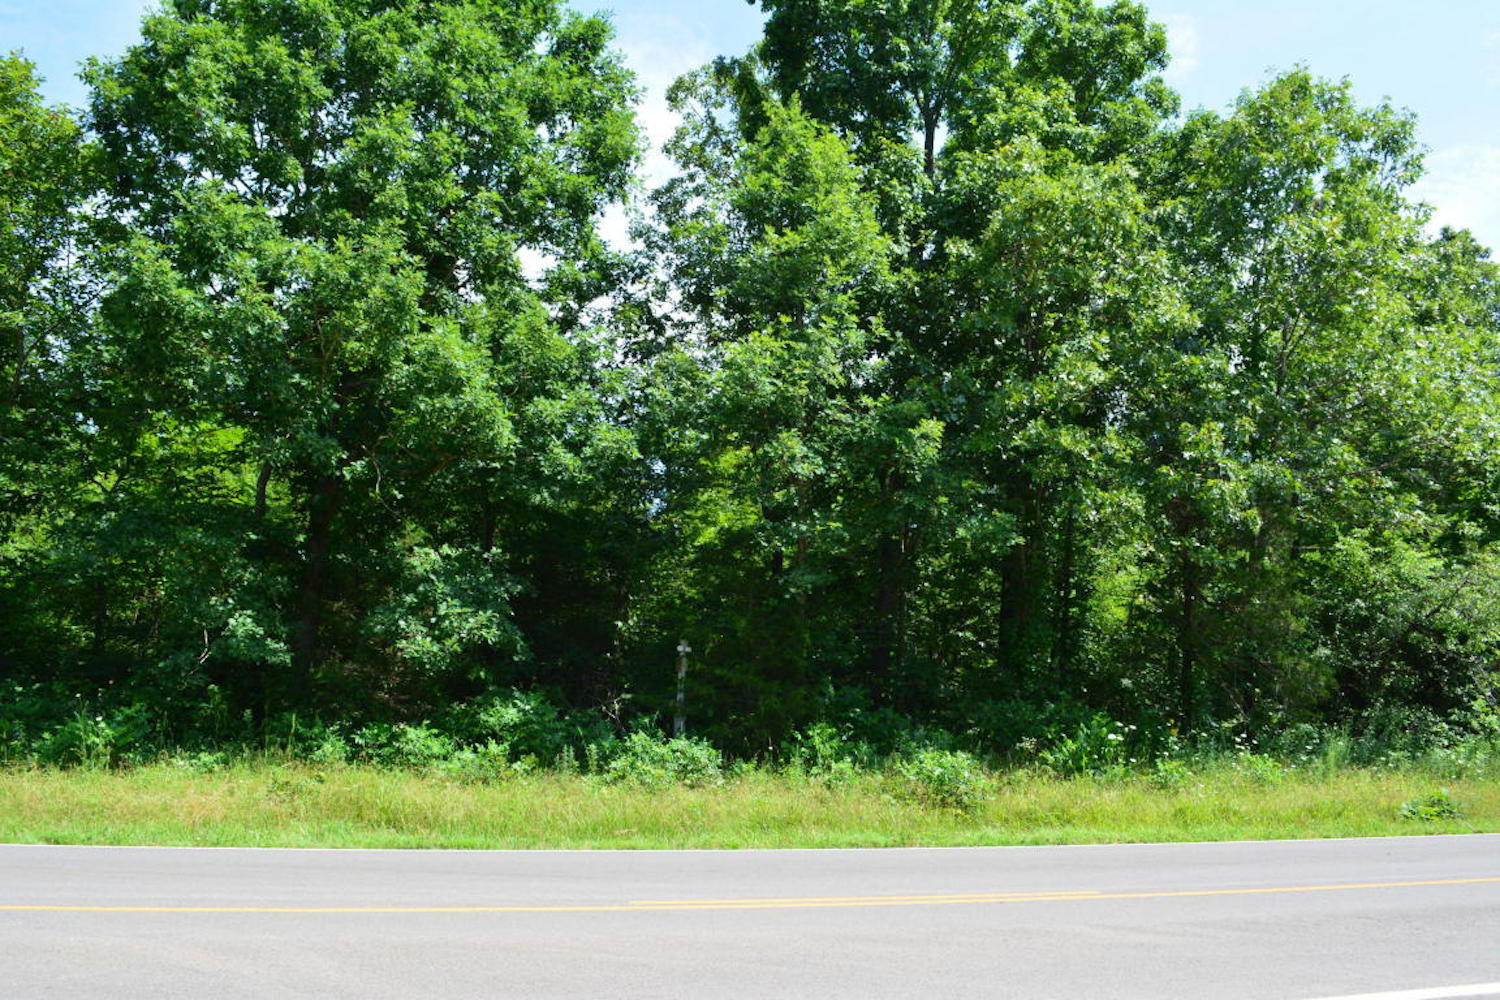 Vacant Land For Sale in Oregon County Missouri